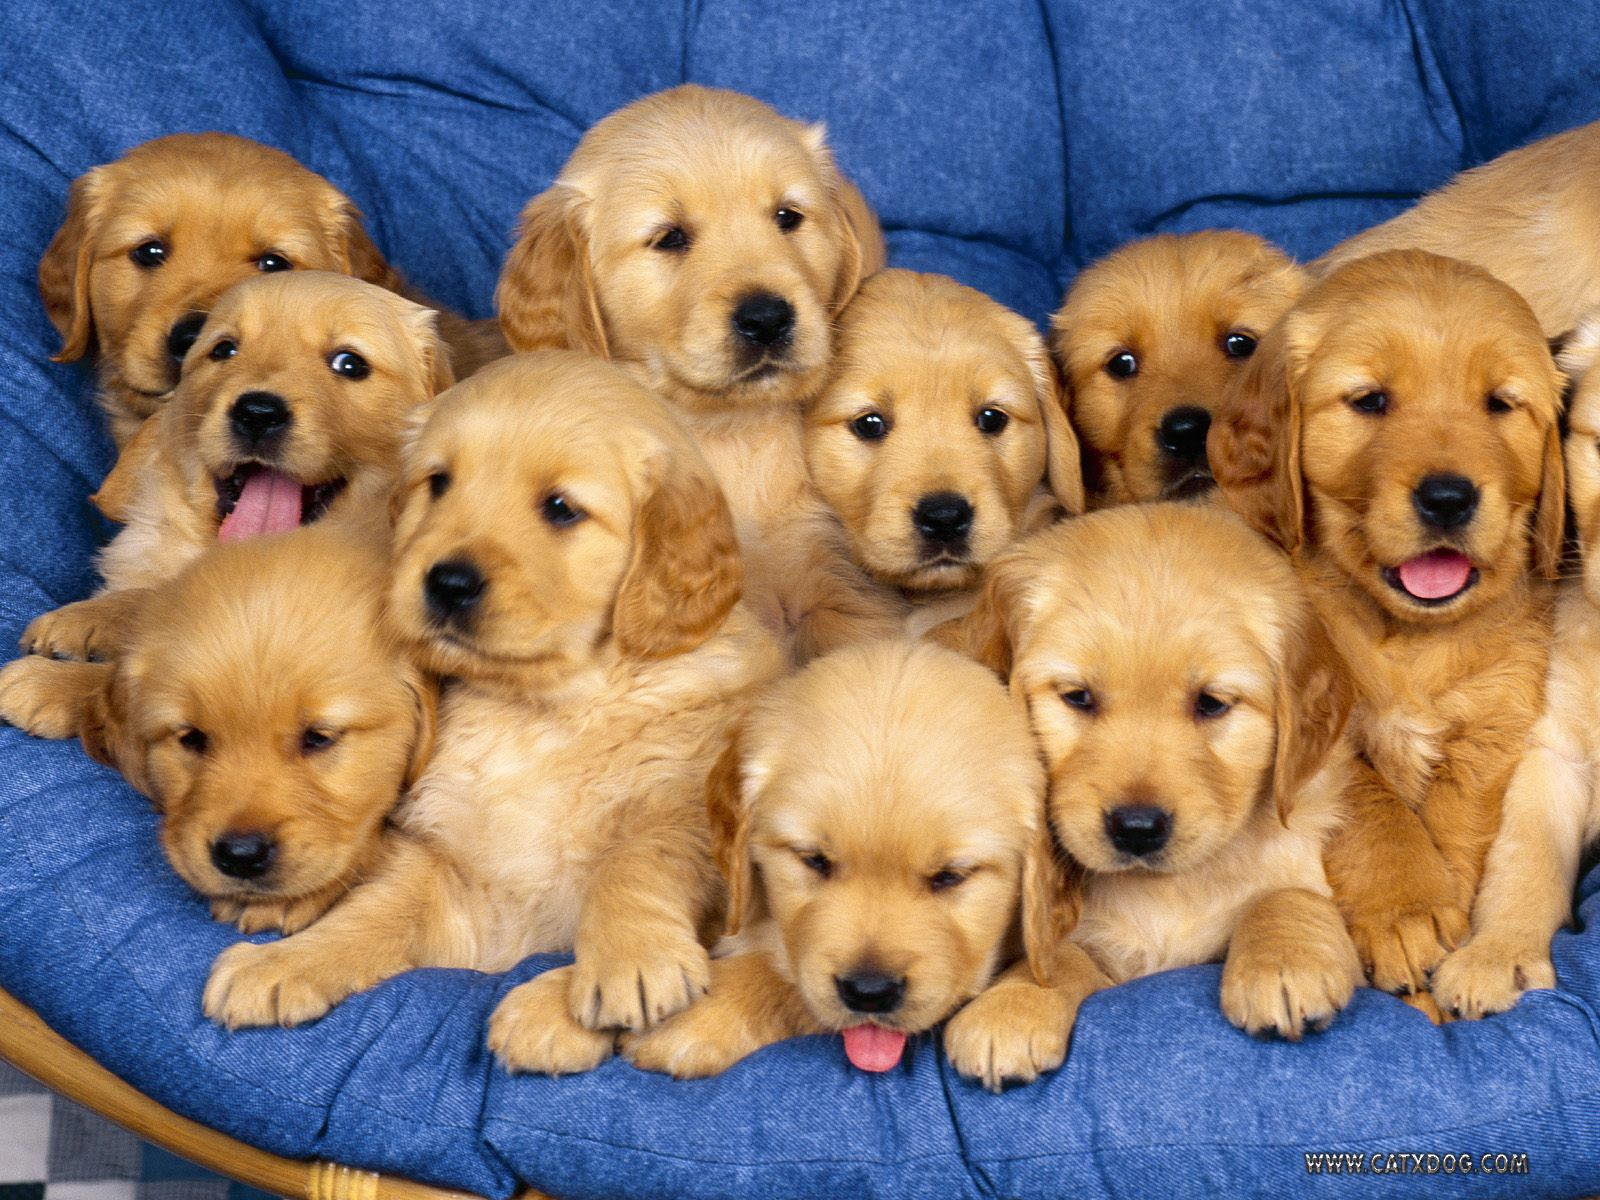 Best Cute Puppy Wallpaper Ideas On Pinterest Puppies - 23 adorable photos proving babies need pets